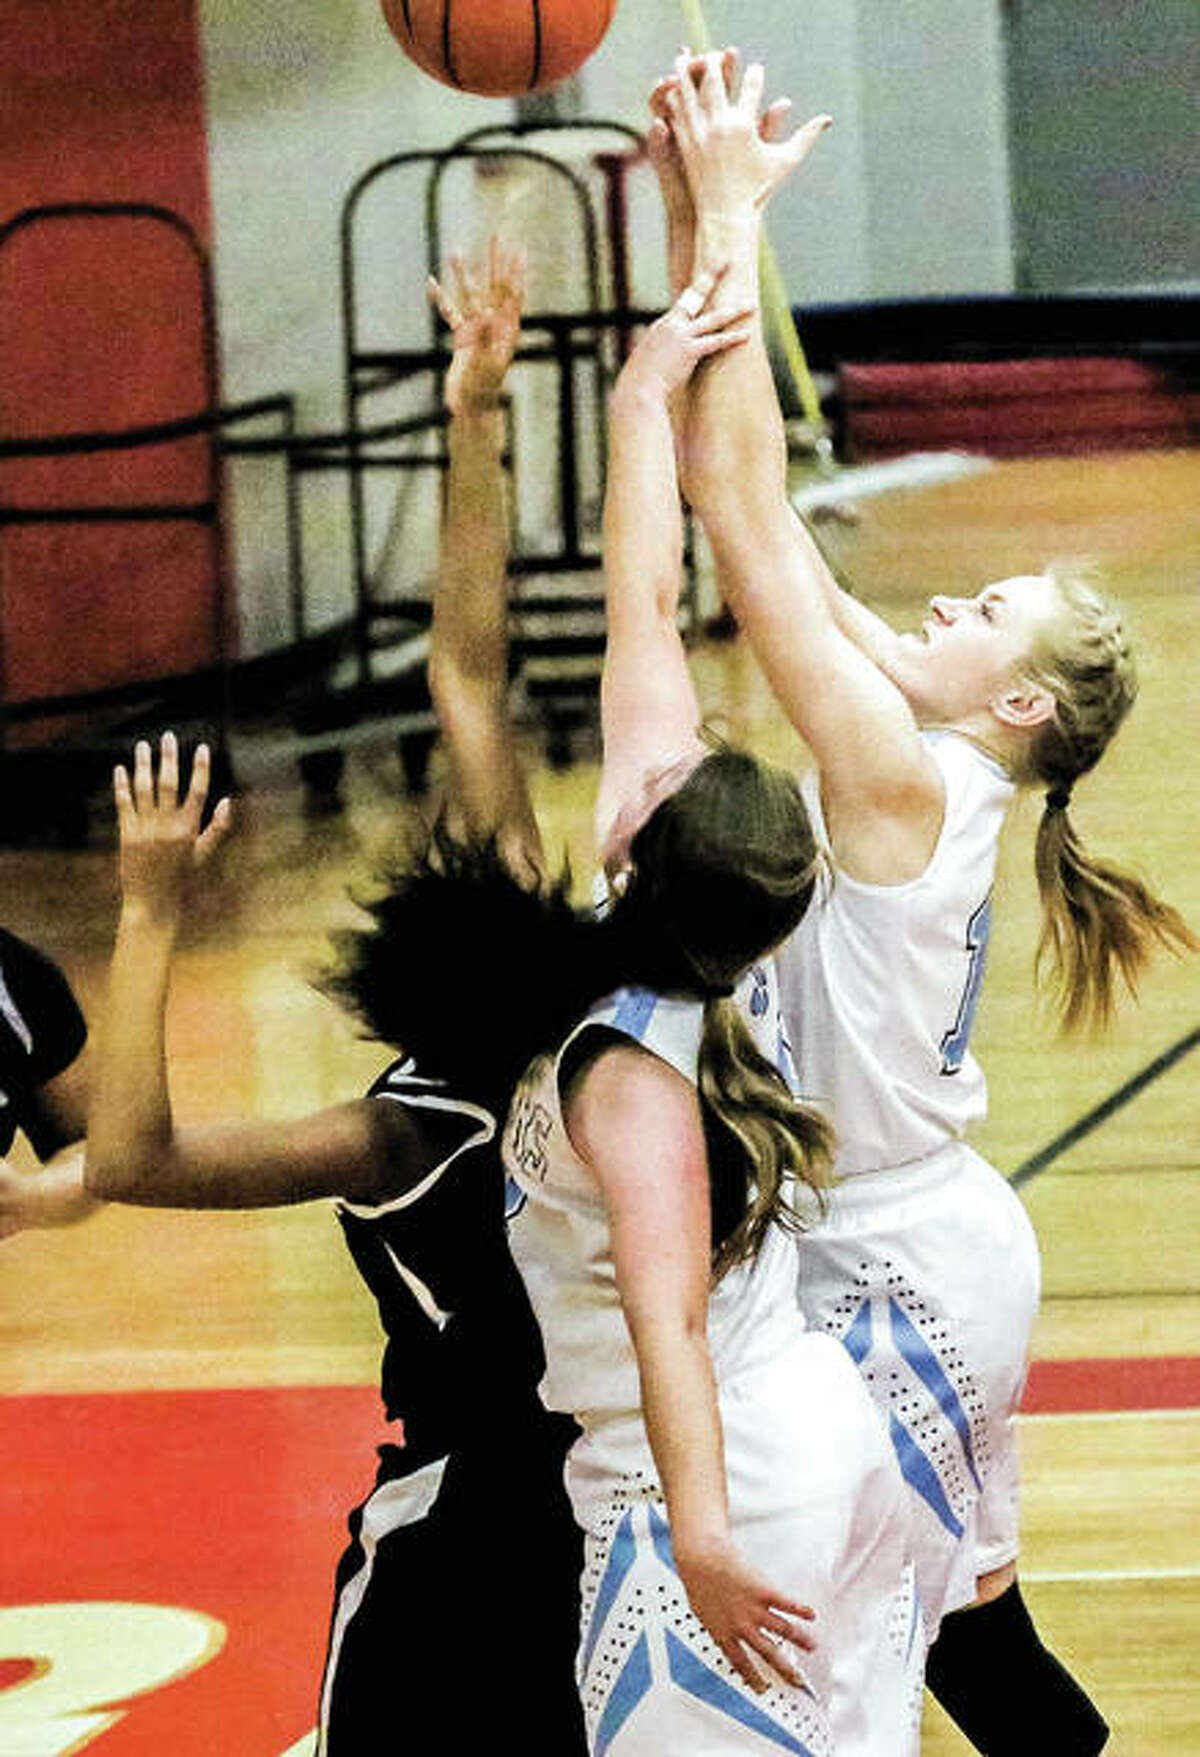 Jersey's Abby Manns, center, scored nine points and Lauren Brown added four points in their team's loss to Breese Mater Dei in the Alton Girls Tip-Off Classic Wednesday night at Alton High. They are pictured in action Monday night against Springfield Southeast.